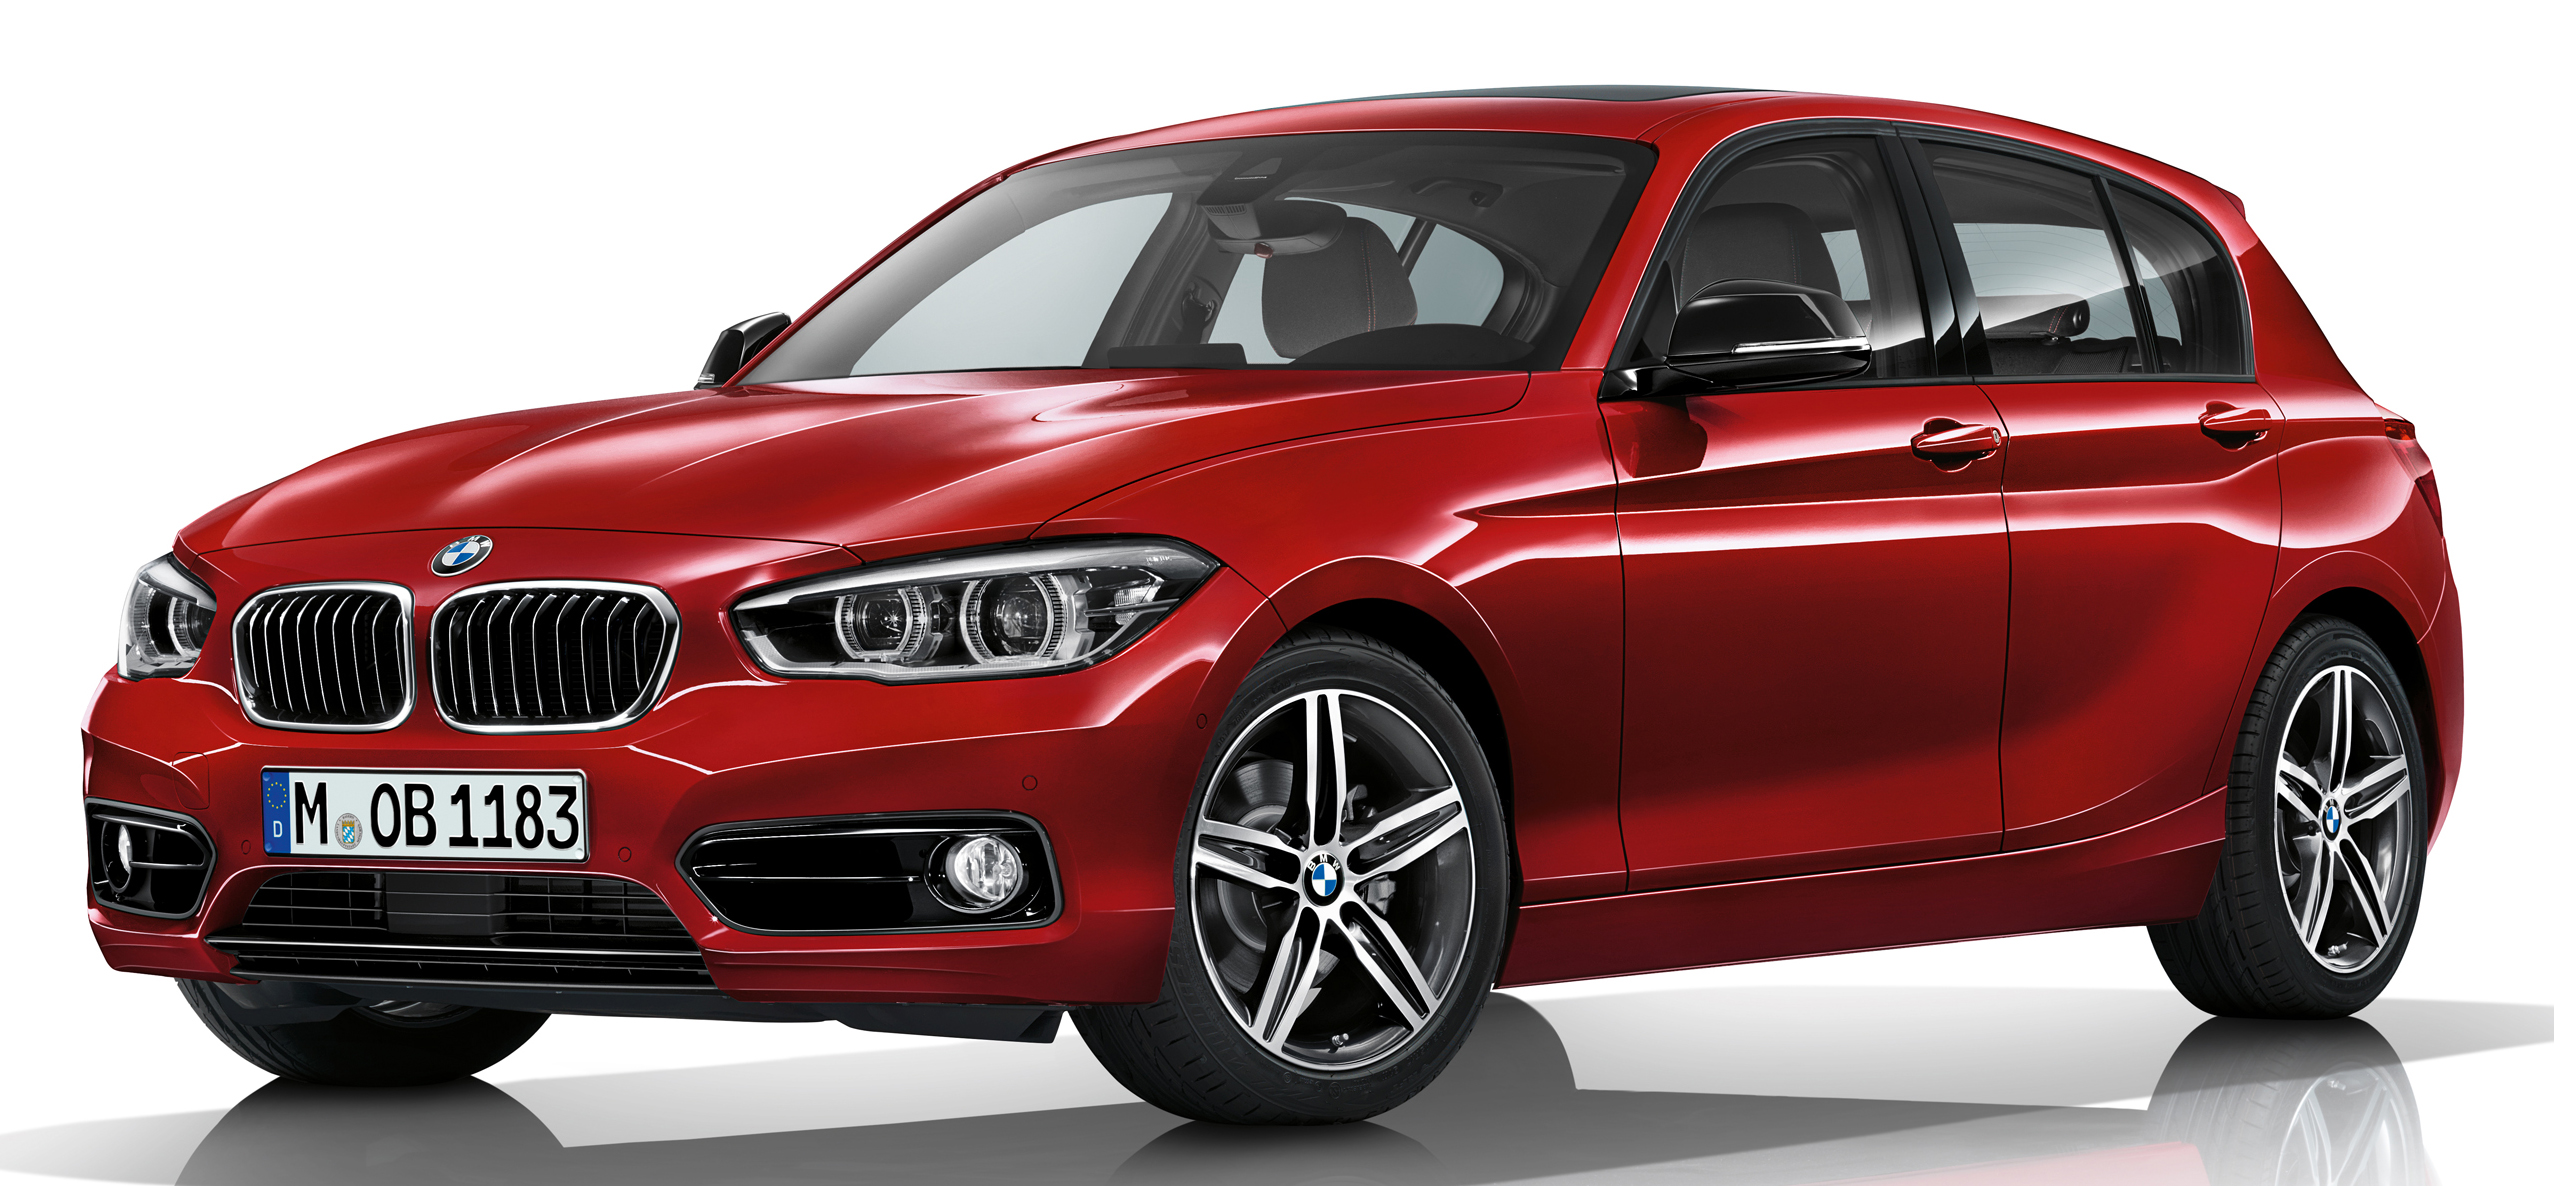 f20 bmw 1 series facelift unveiled new face and rear end. Black Bedroom Furniture Sets. Home Design Ideas